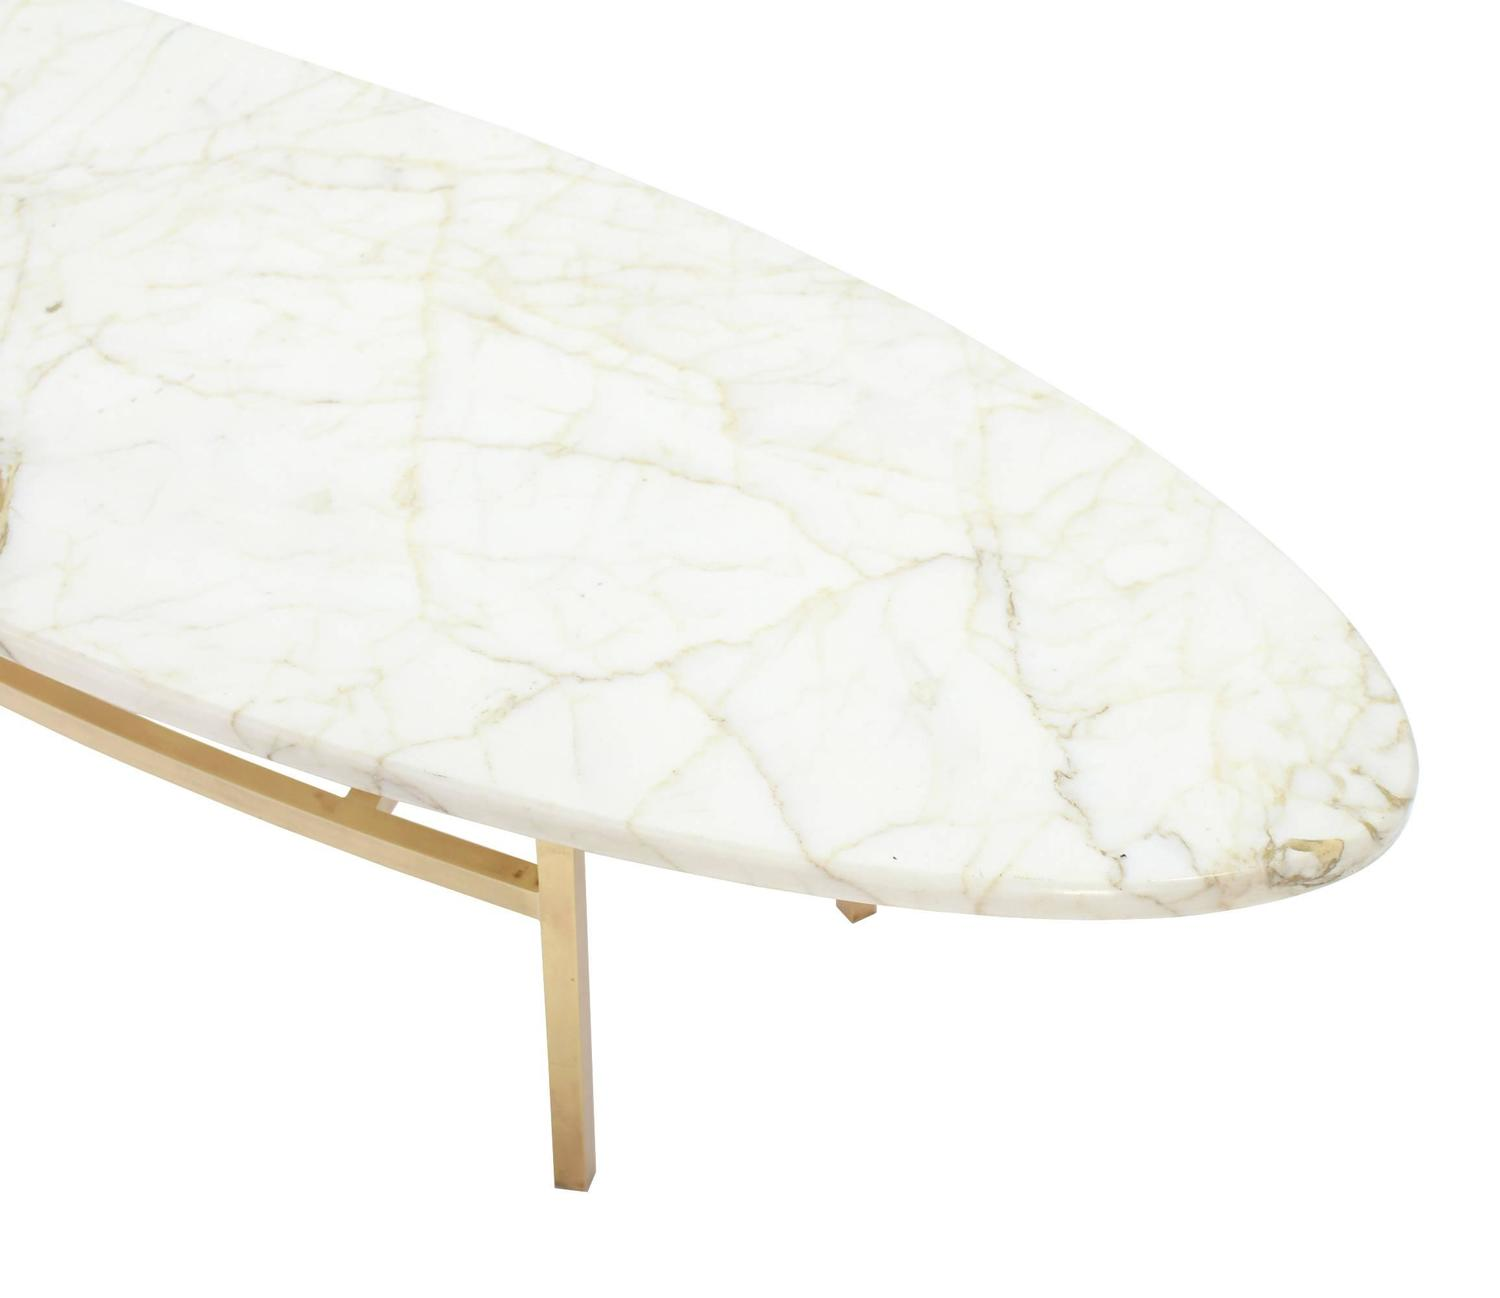 Mid Century Modern Marble Top Coffee Table: Brass And Oval Marble Top Mid-Century Modern Coffee Table